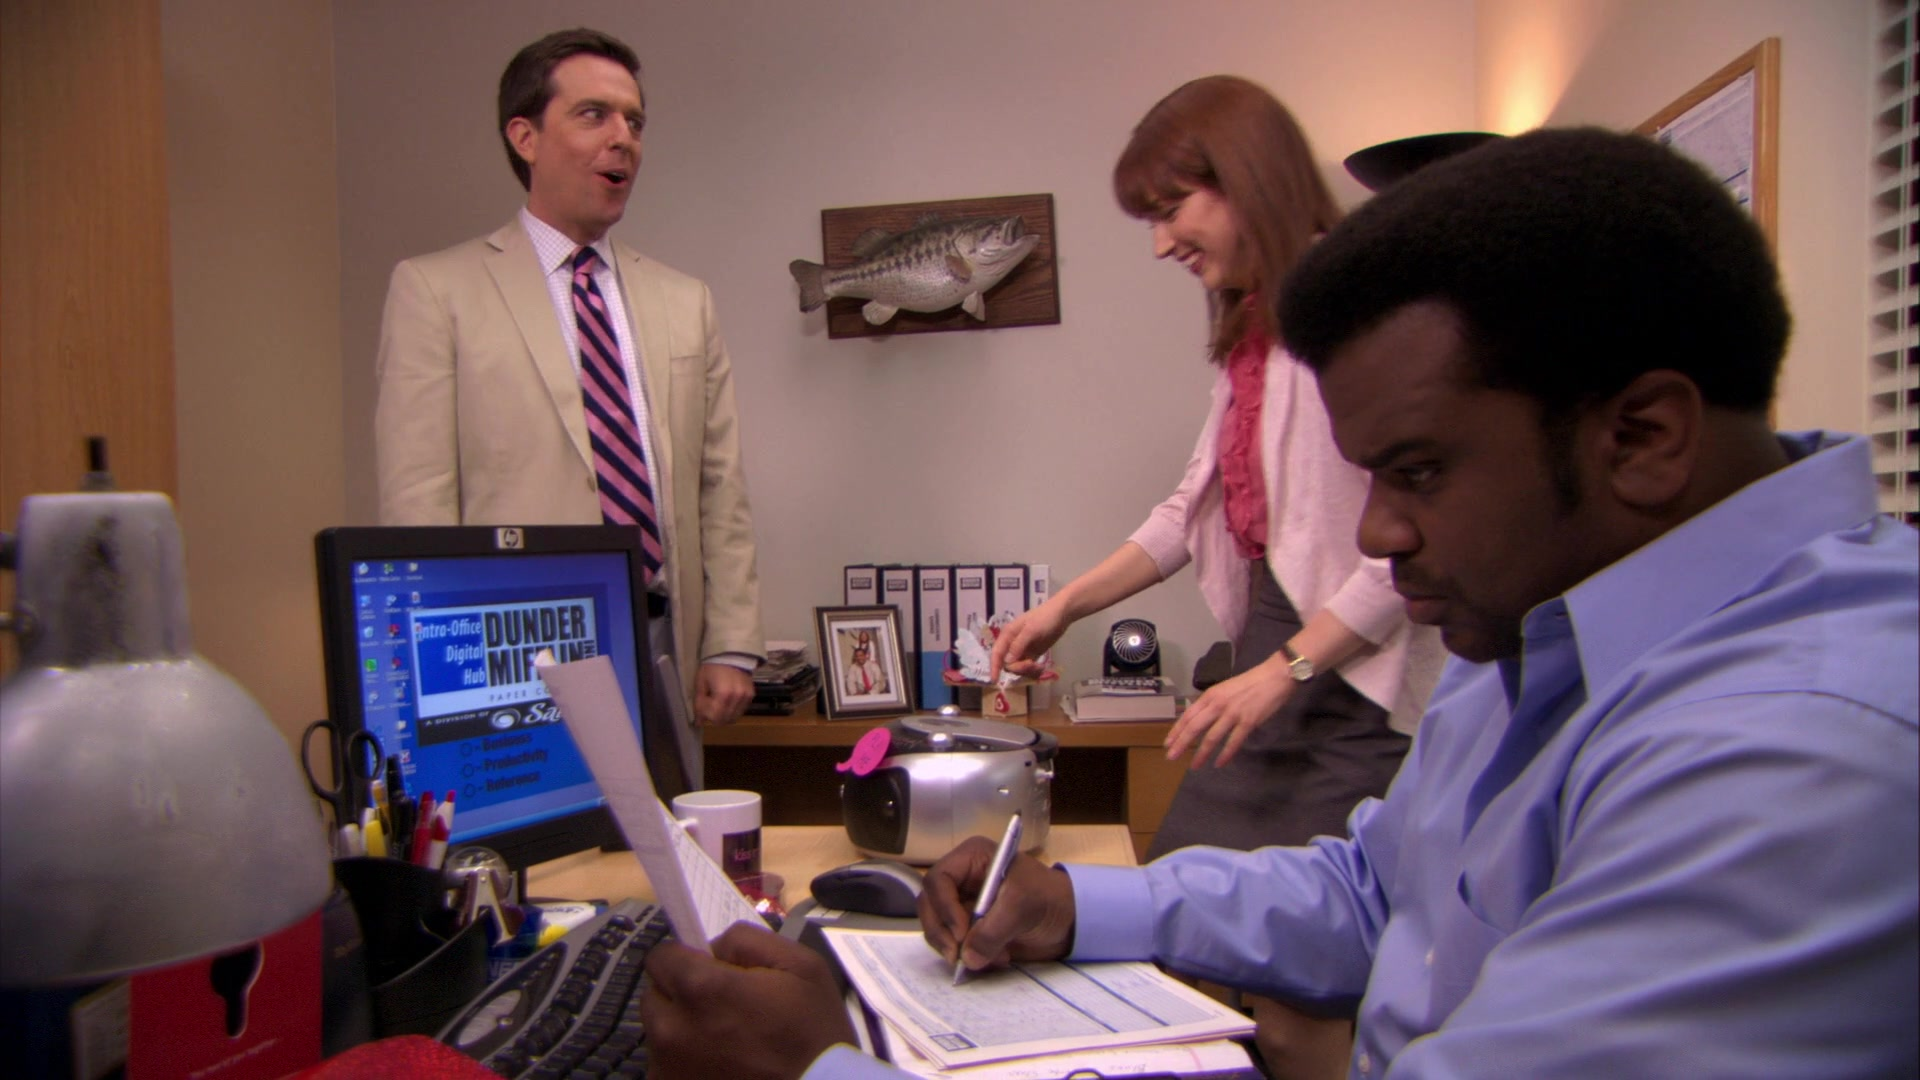 HP Monitor Used by Craig Robinson (Darryl Philbin) in The